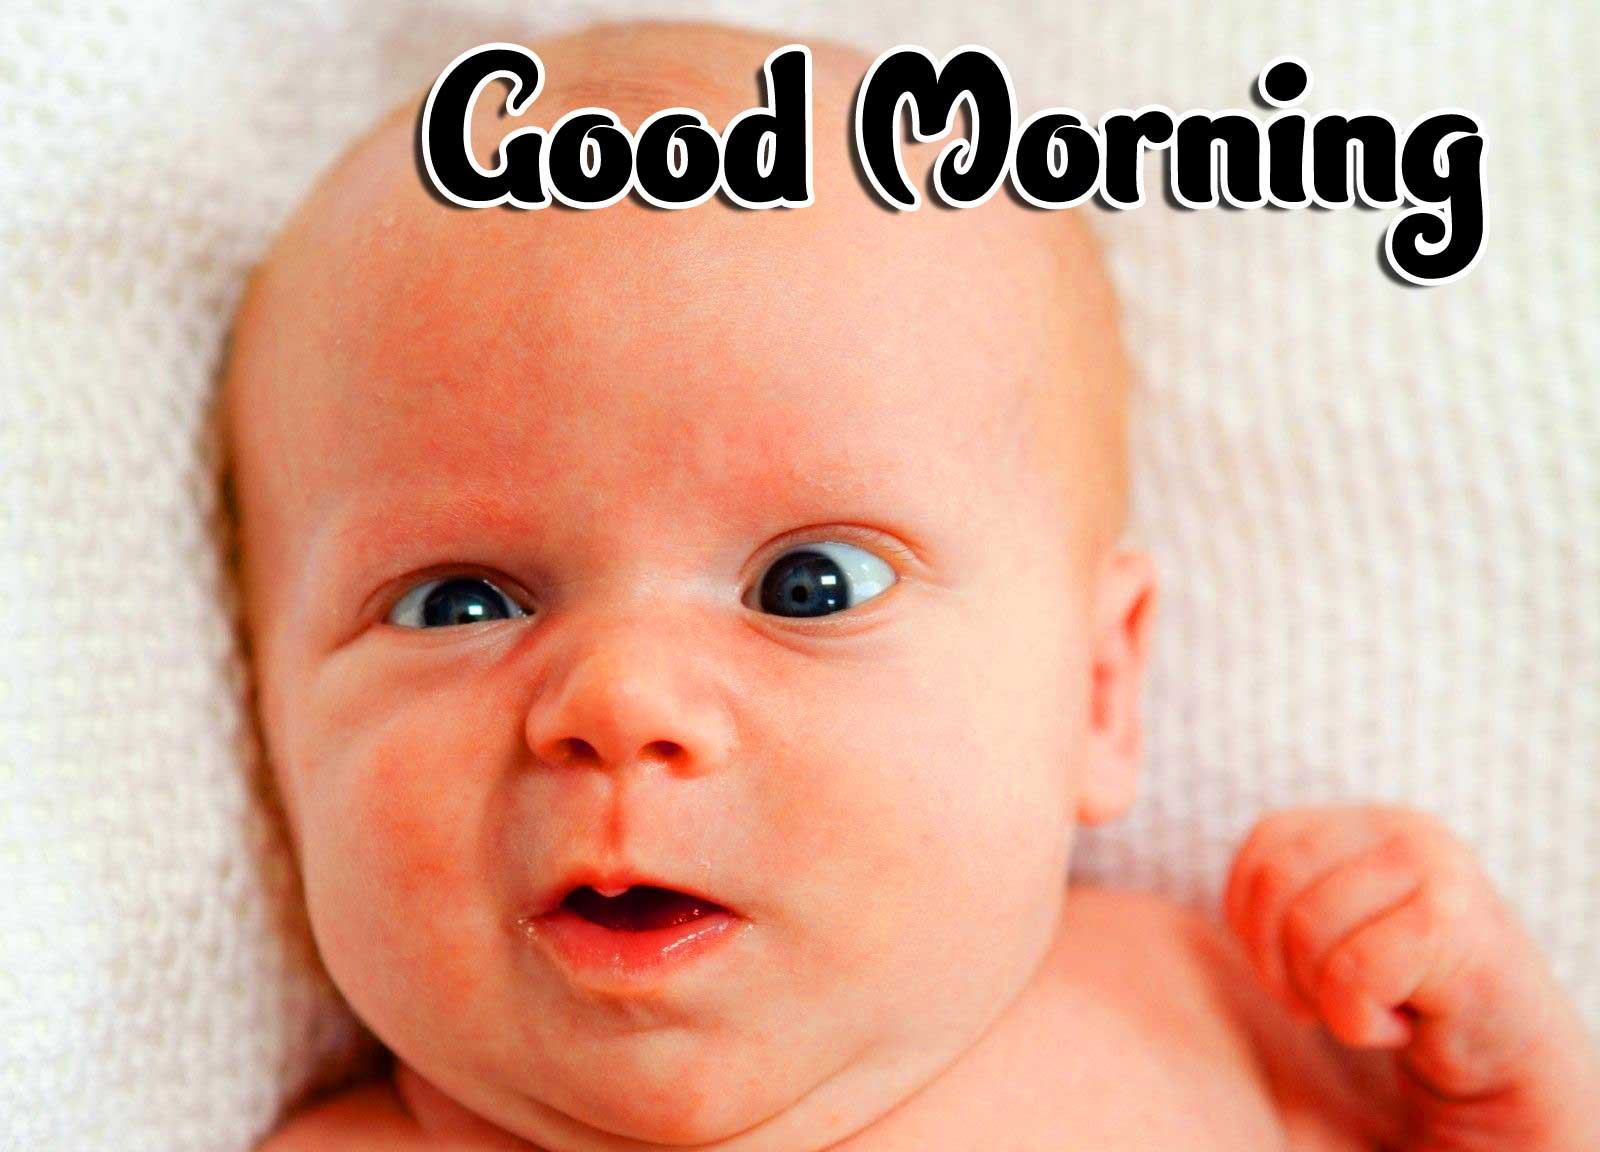 Good Morning Small Baby Images Wallpaper Pics Free Download